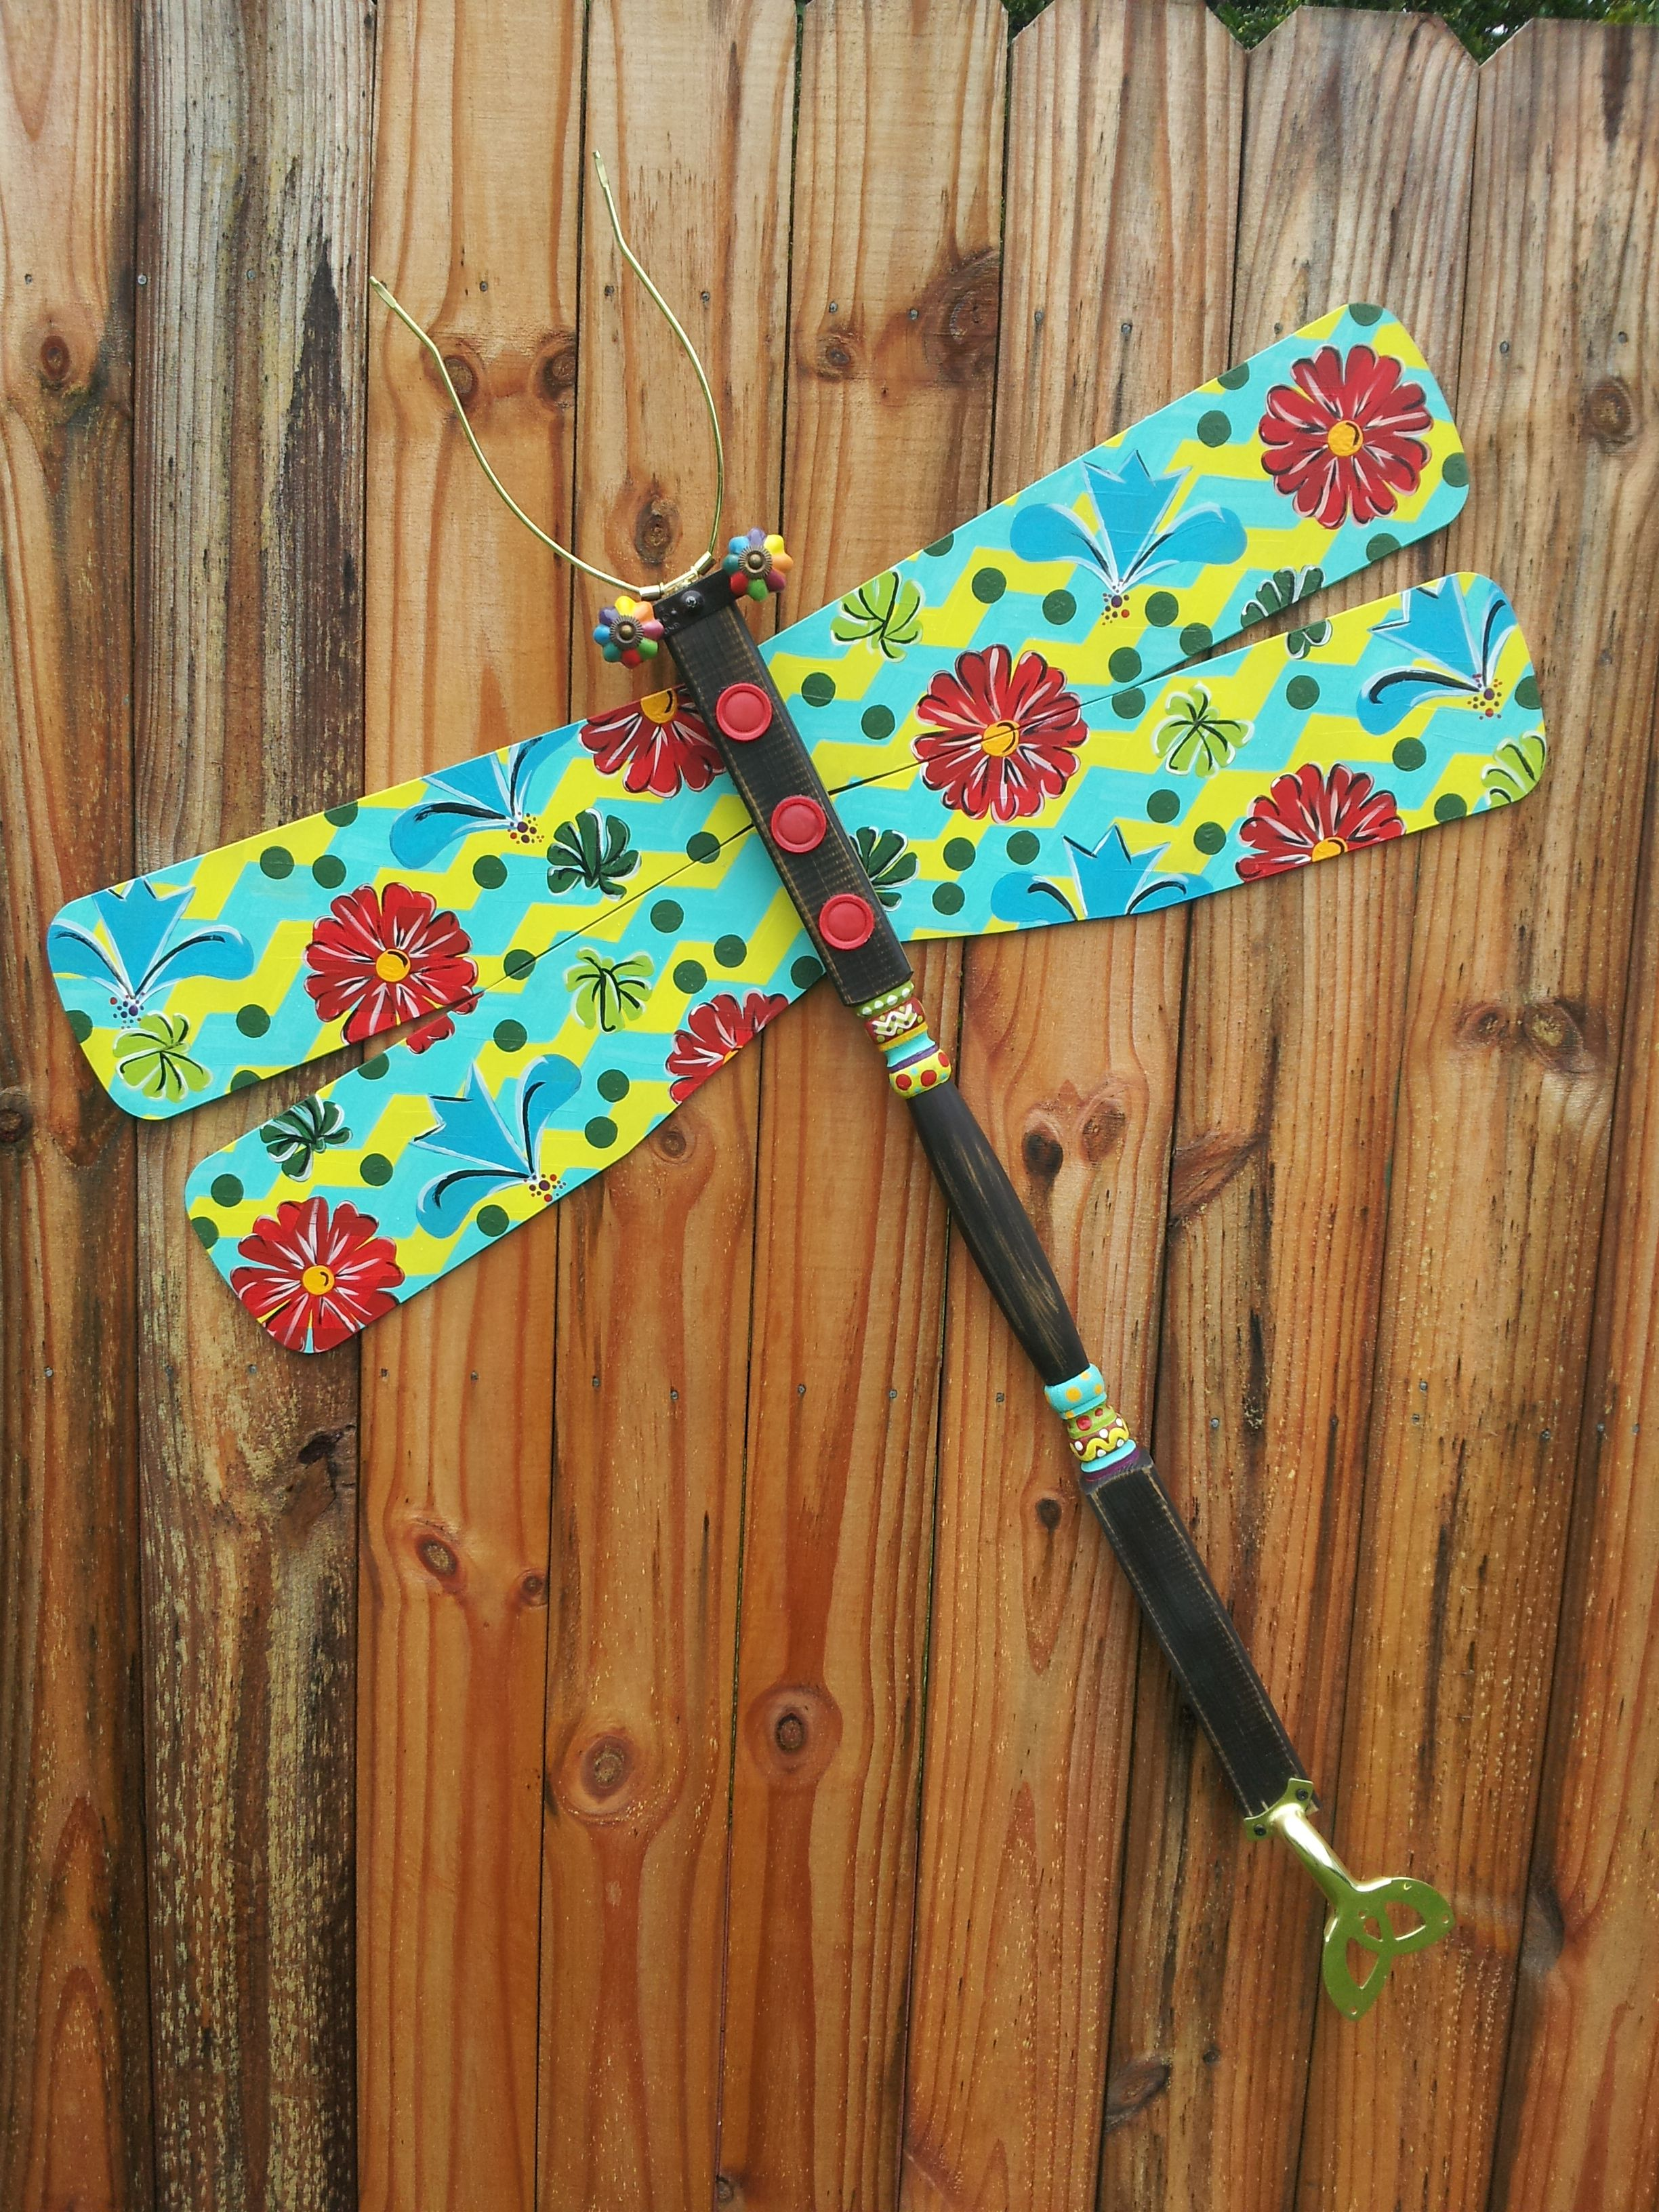 Dragonfly Ceiling Fan Blade Yard Art